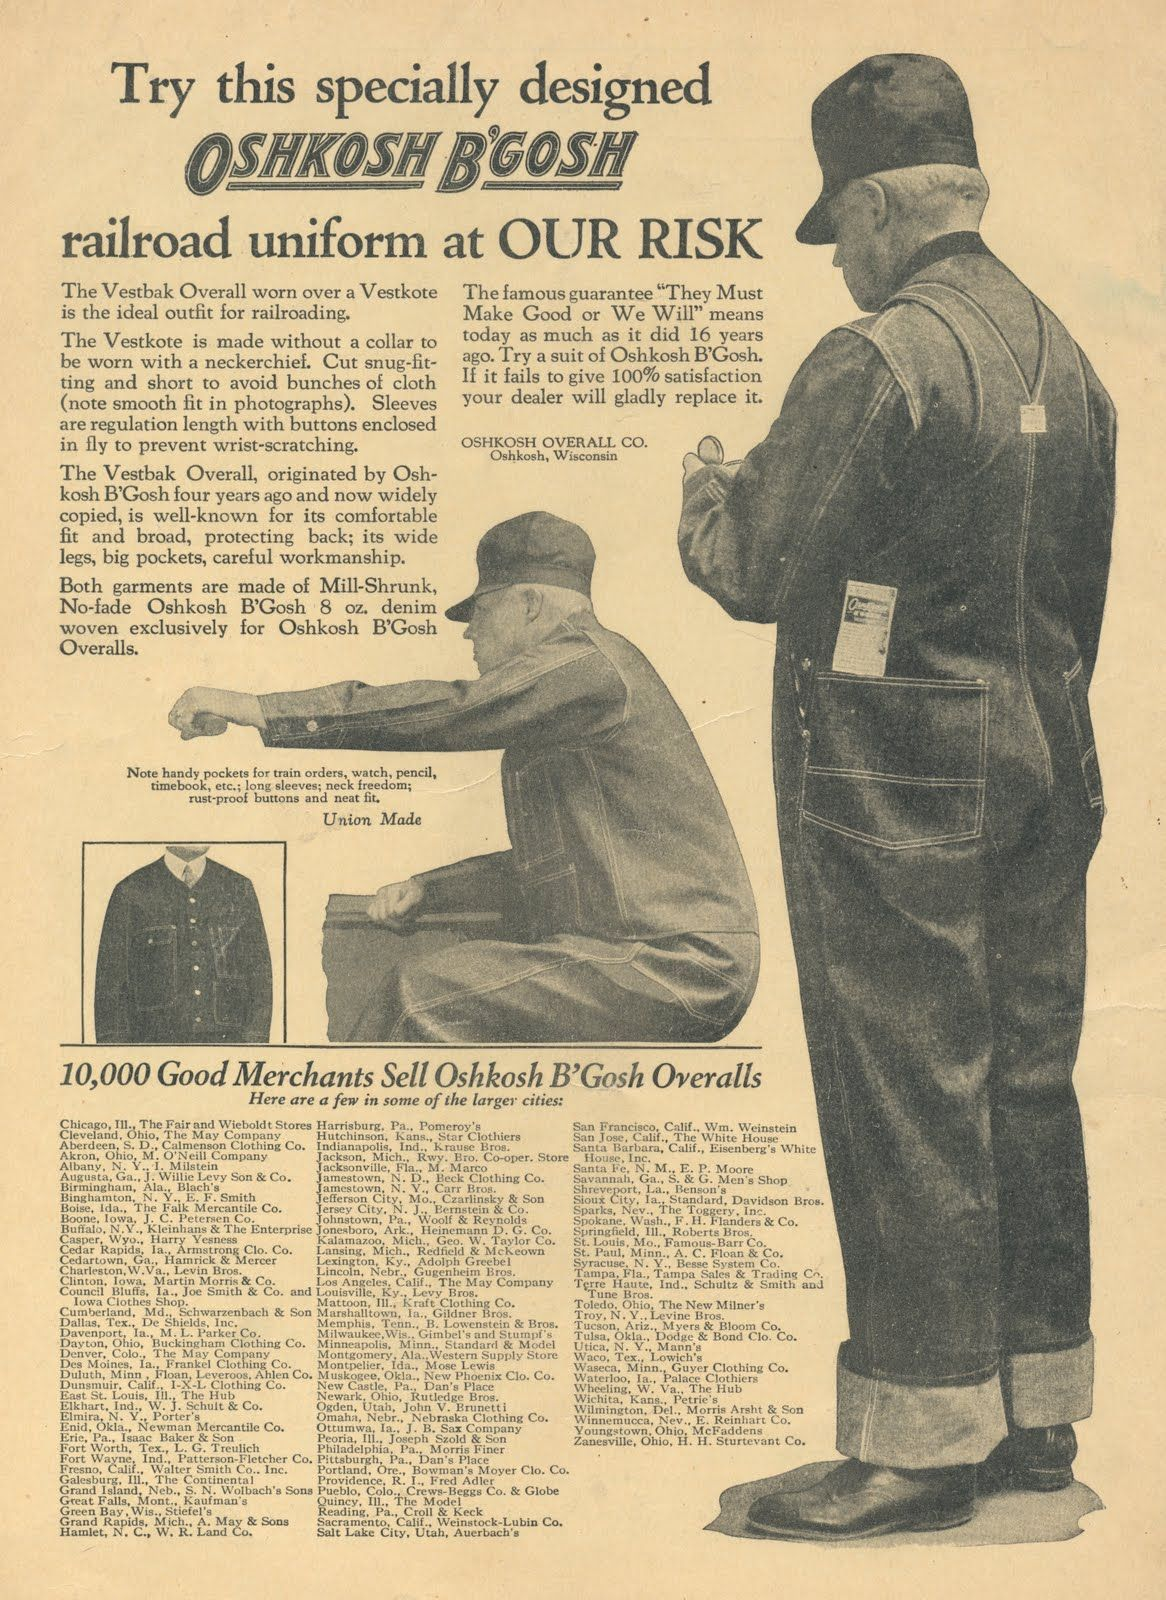 Oshkosh B'gosh AD from Brotherhood of Locomotive Firemen and Enginemen's Magazine. Vol. 83, No.1, July 1927